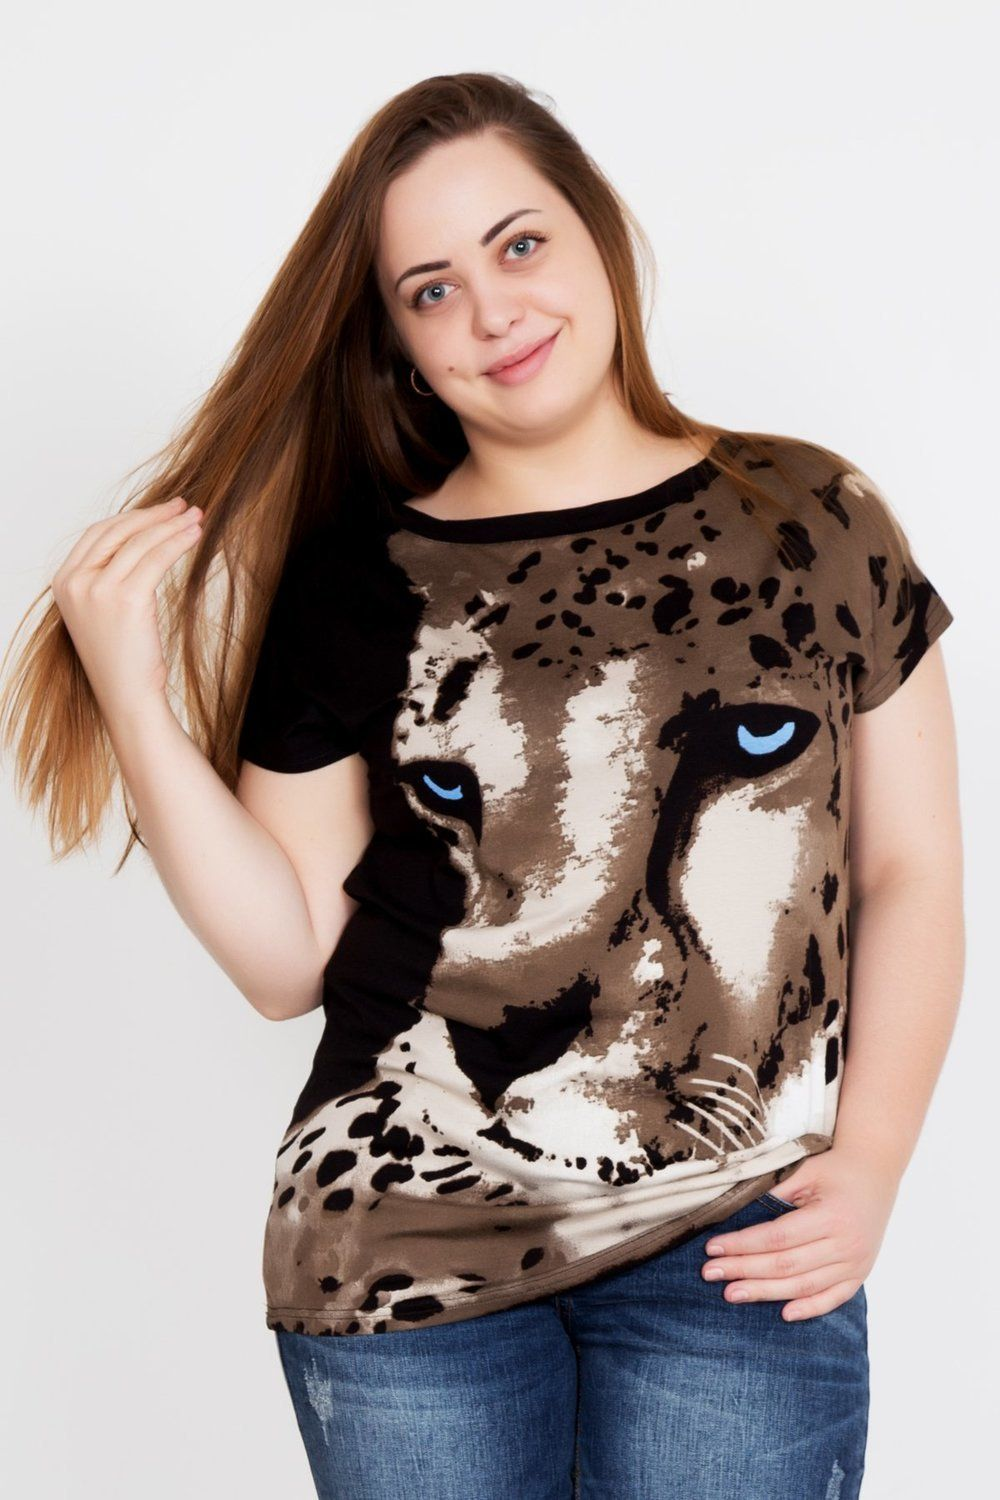 Lika Dress / Blouse Leopard Art. 2345